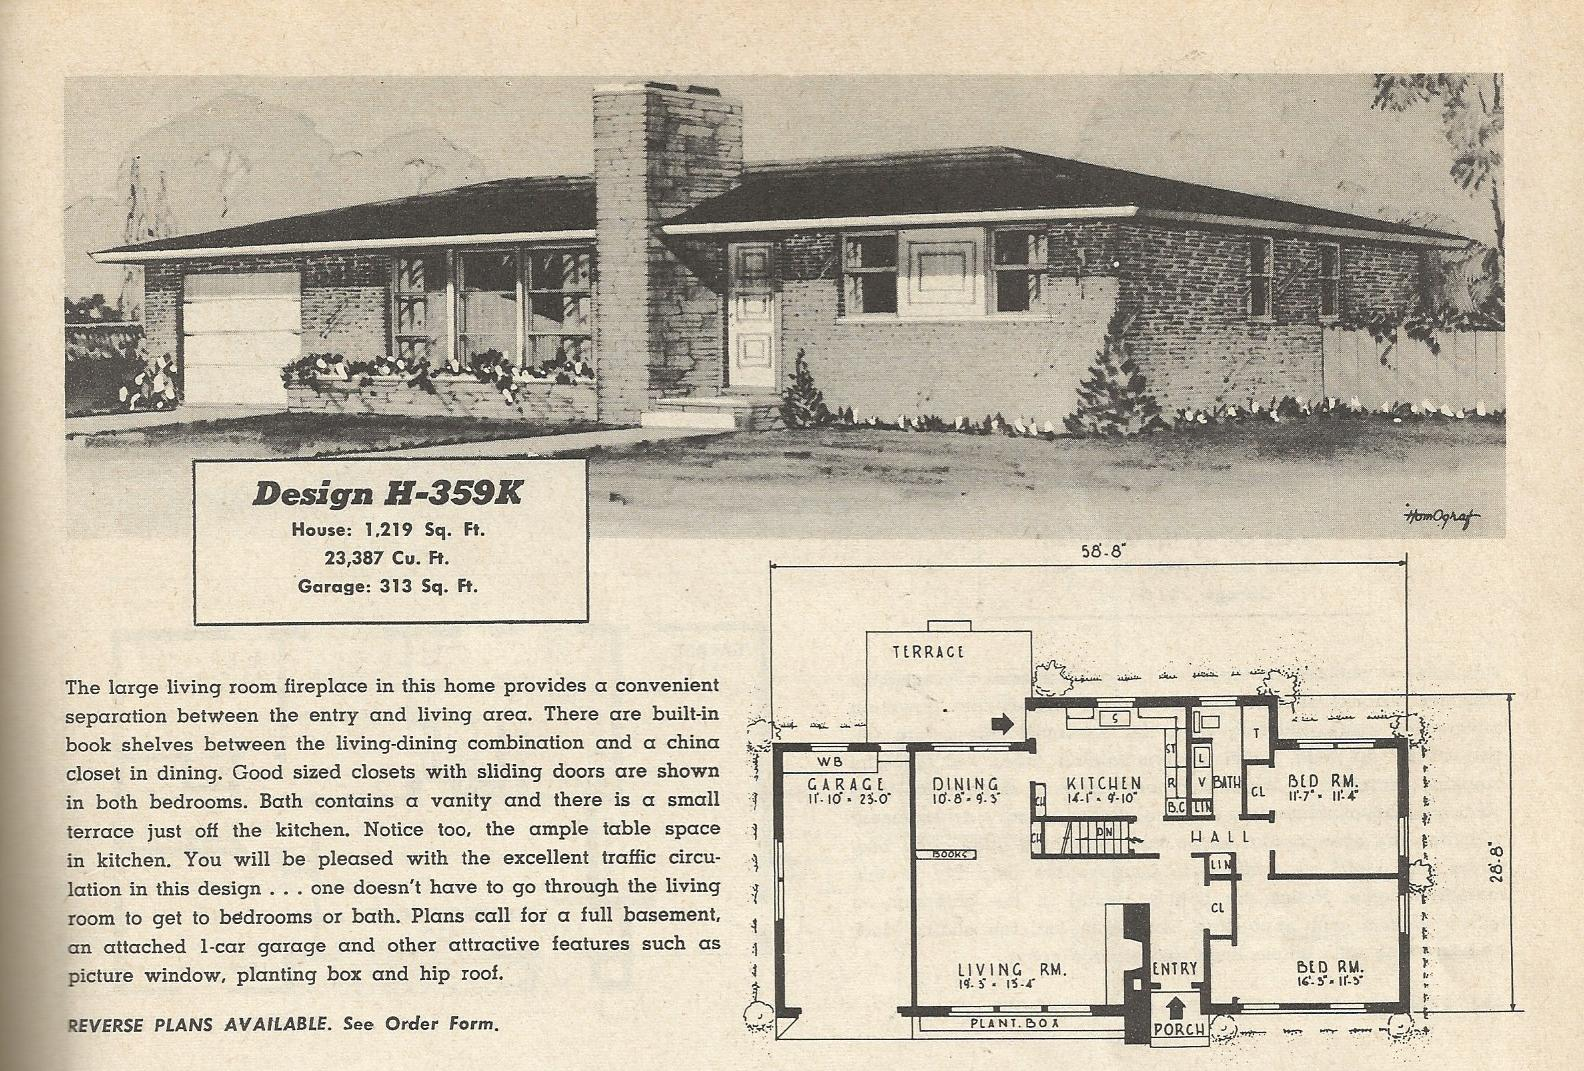 Vintage house plans 359 antique alter ego - Retro home design ...